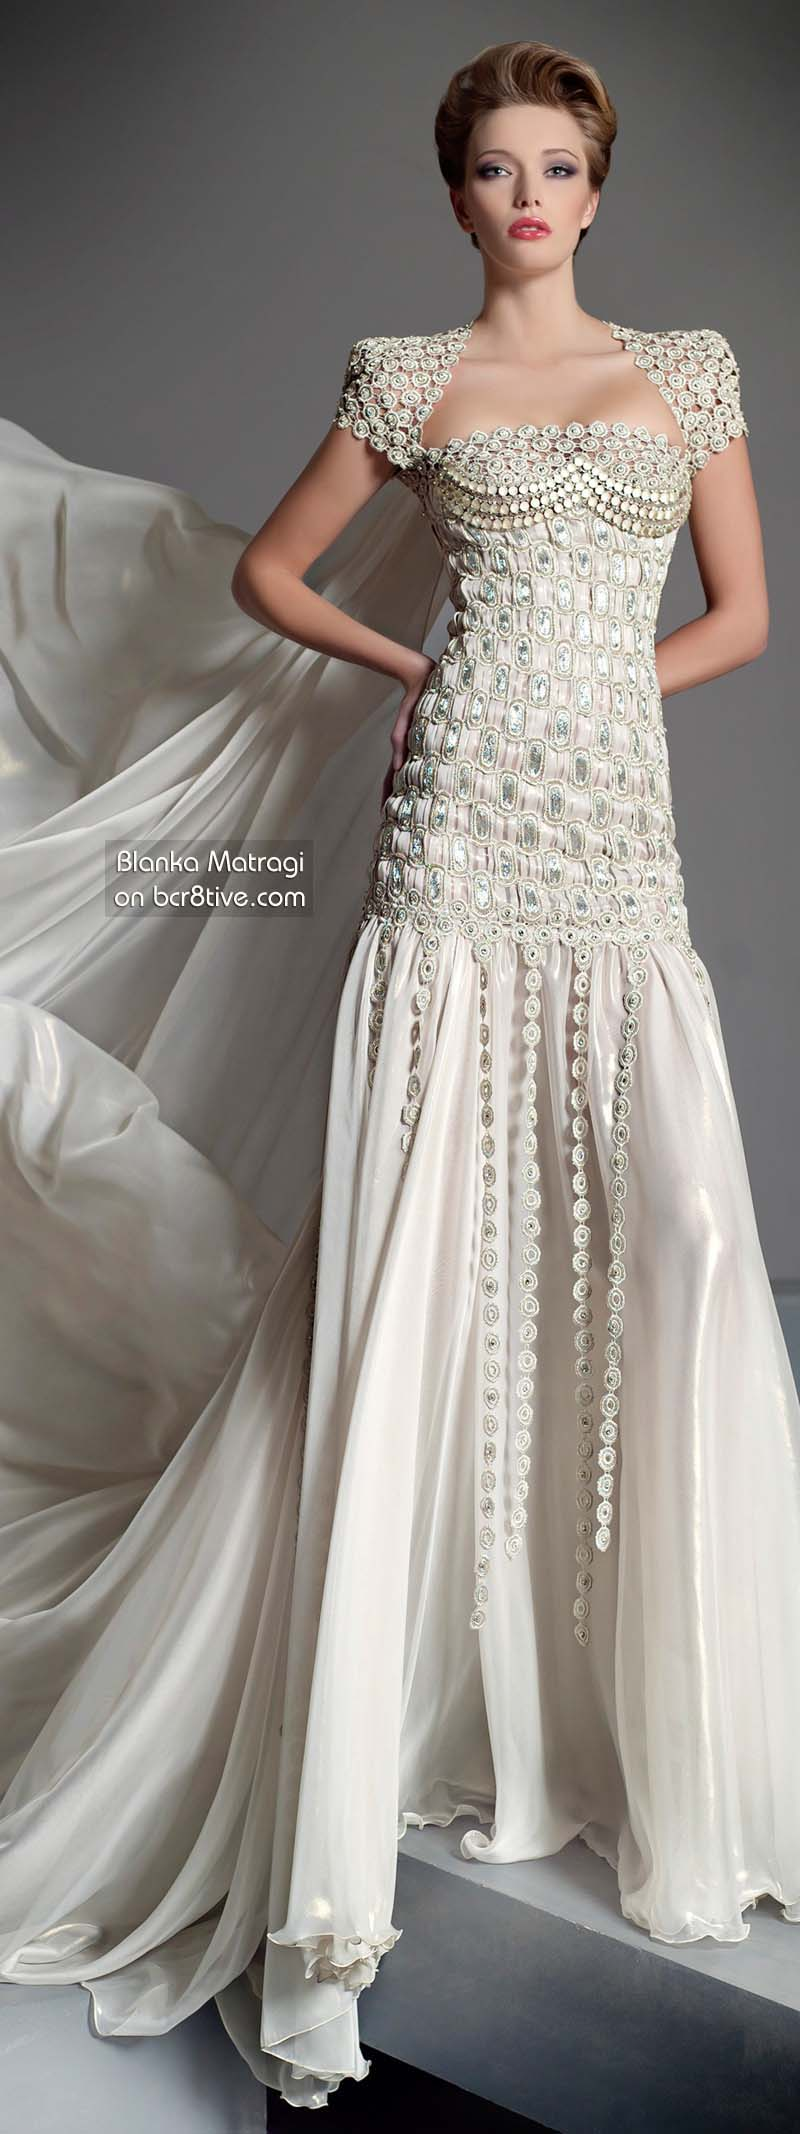 The Versatile Talents of Artisan Blanka Matragi » Blanka Matragi 30th Anniversary Couture Collection - Wedding Dress